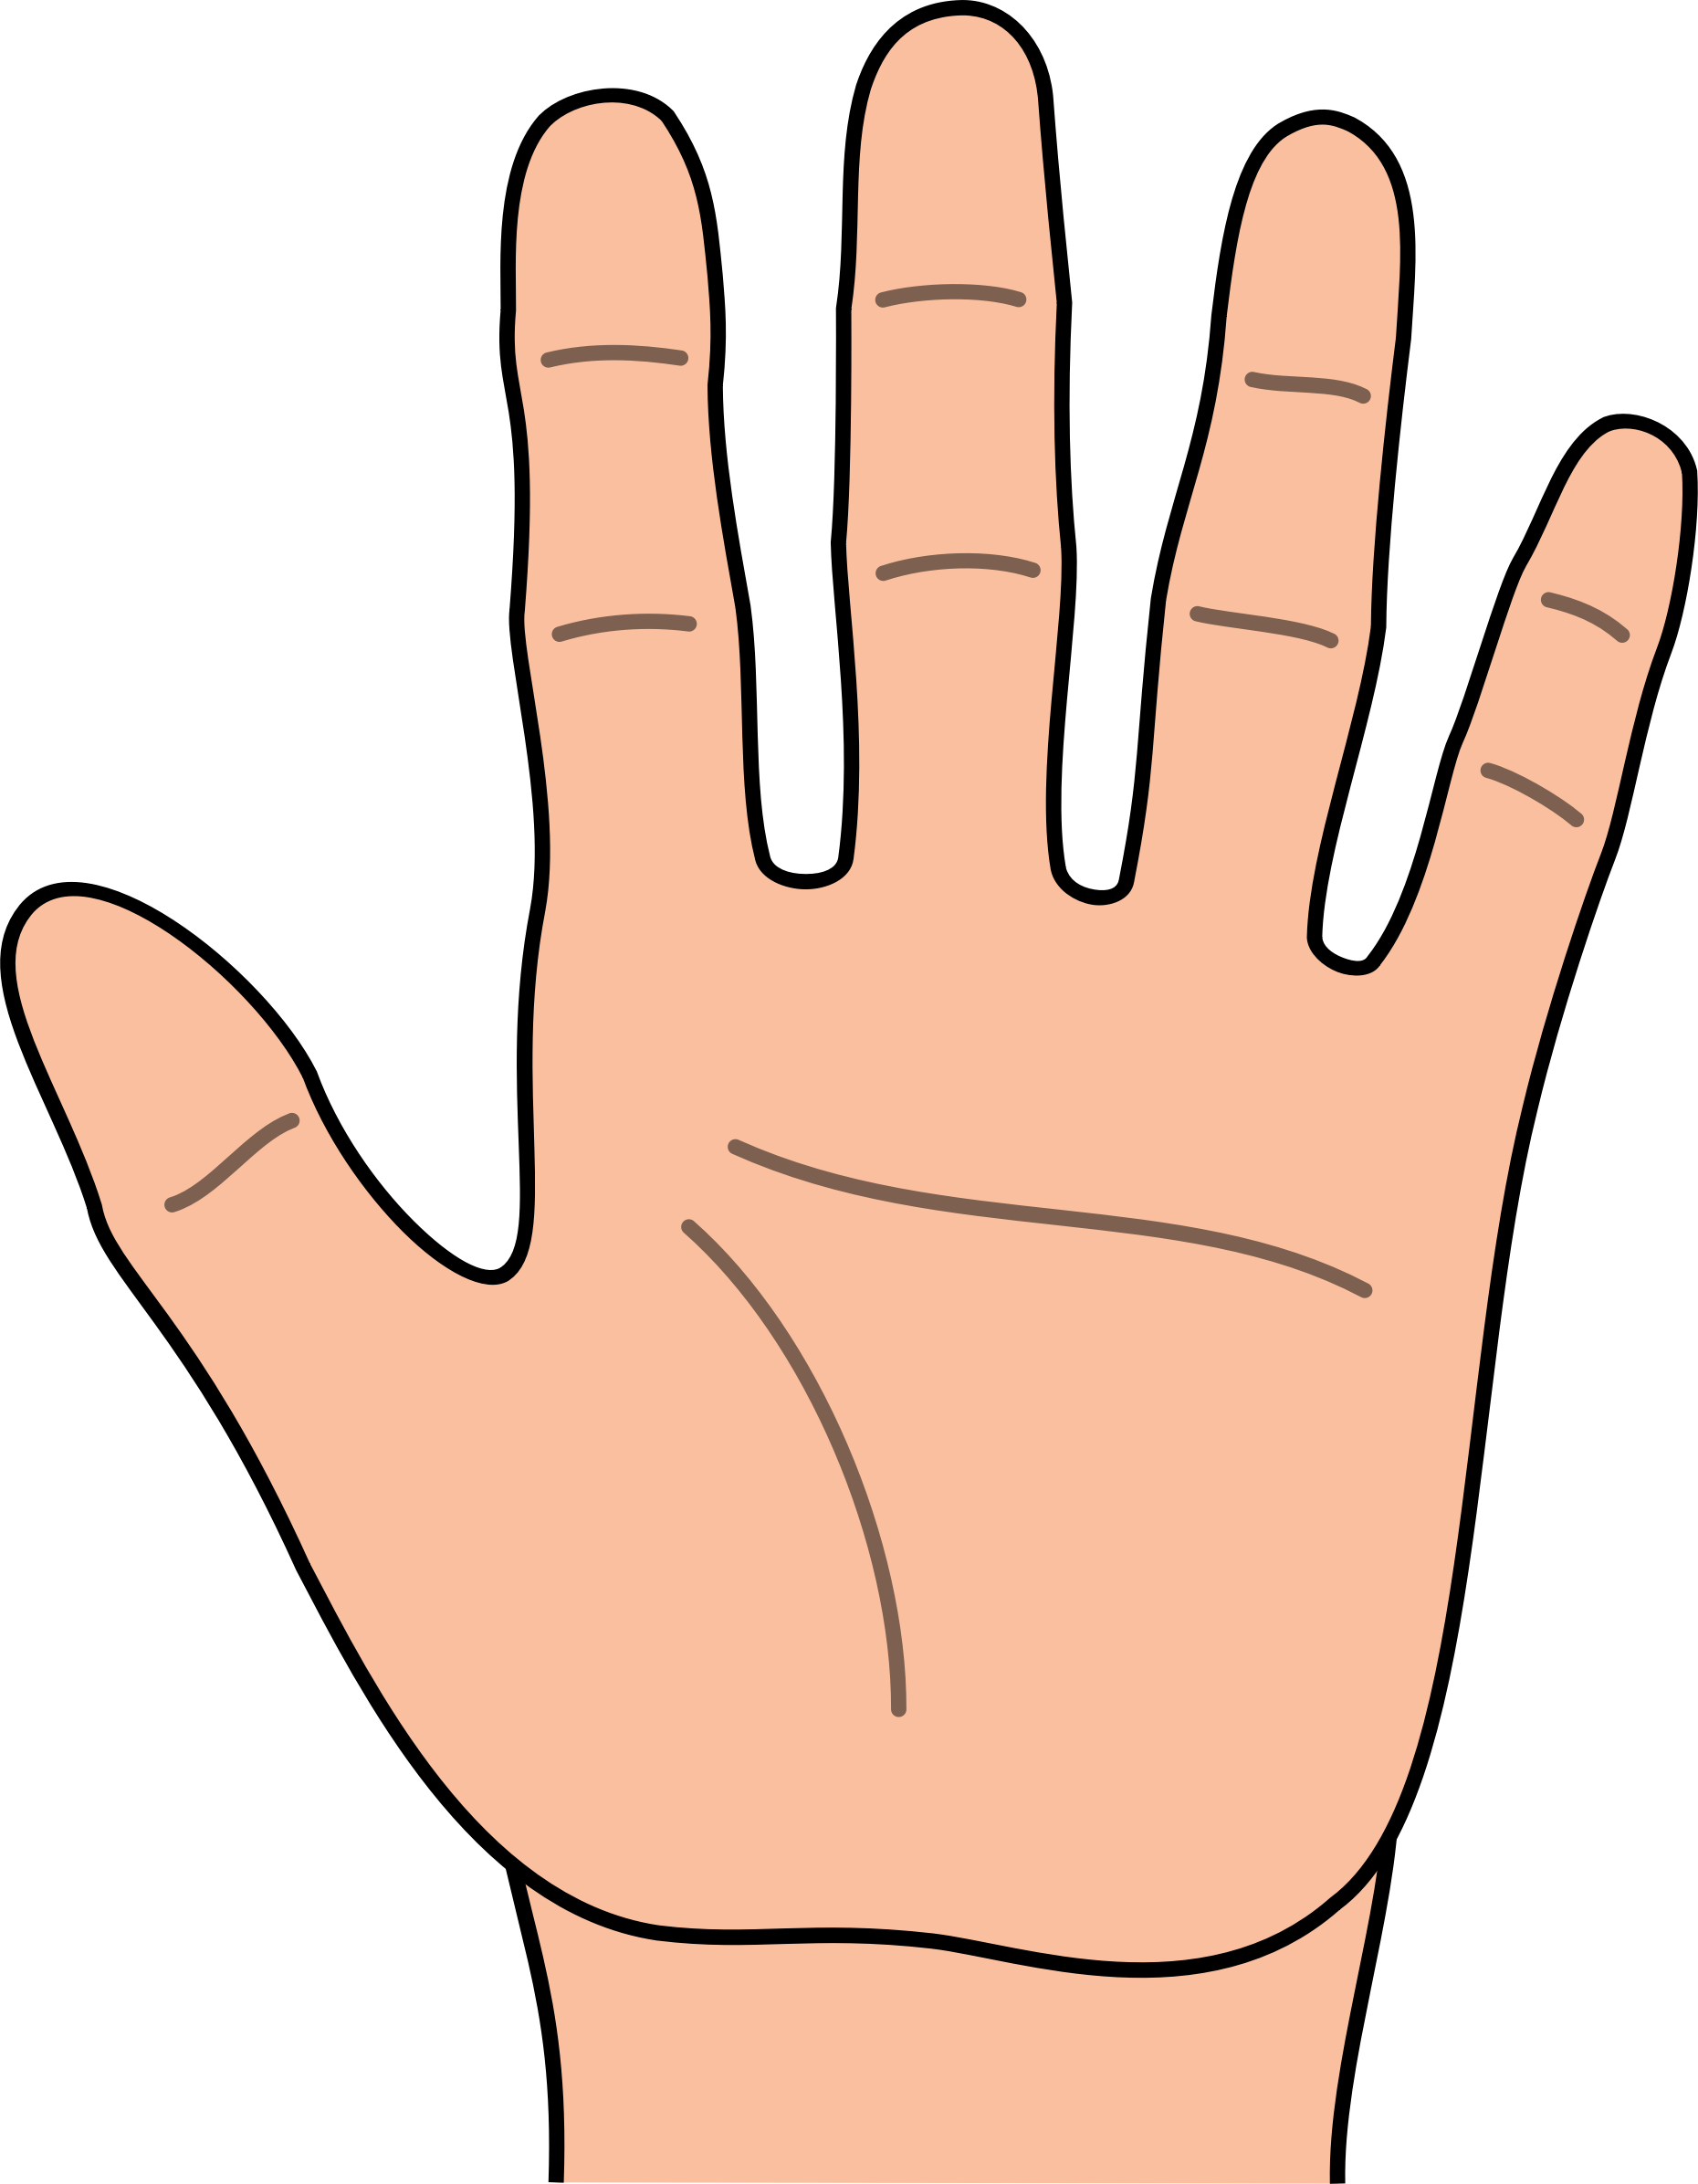 Hands clipart #16, Download drawings